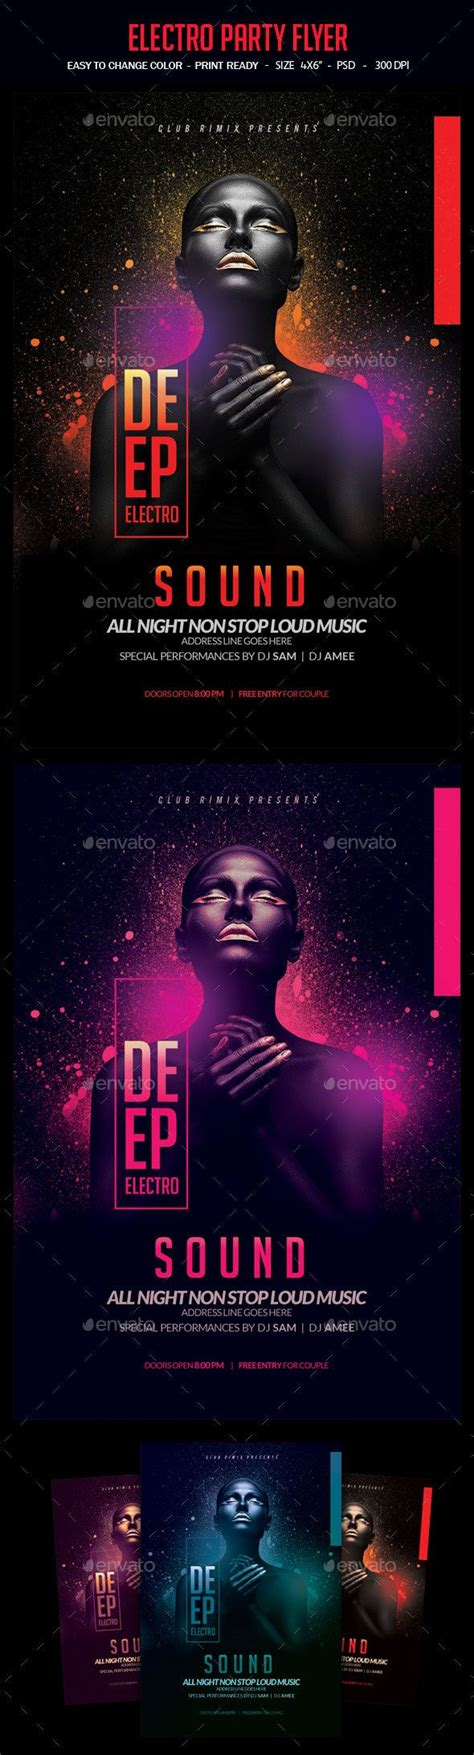 Download Graphicriver Electro Dj Party Flyer Template 6502526 by Best 25 Flyer Template Ideas On Pinterest Flyer Design